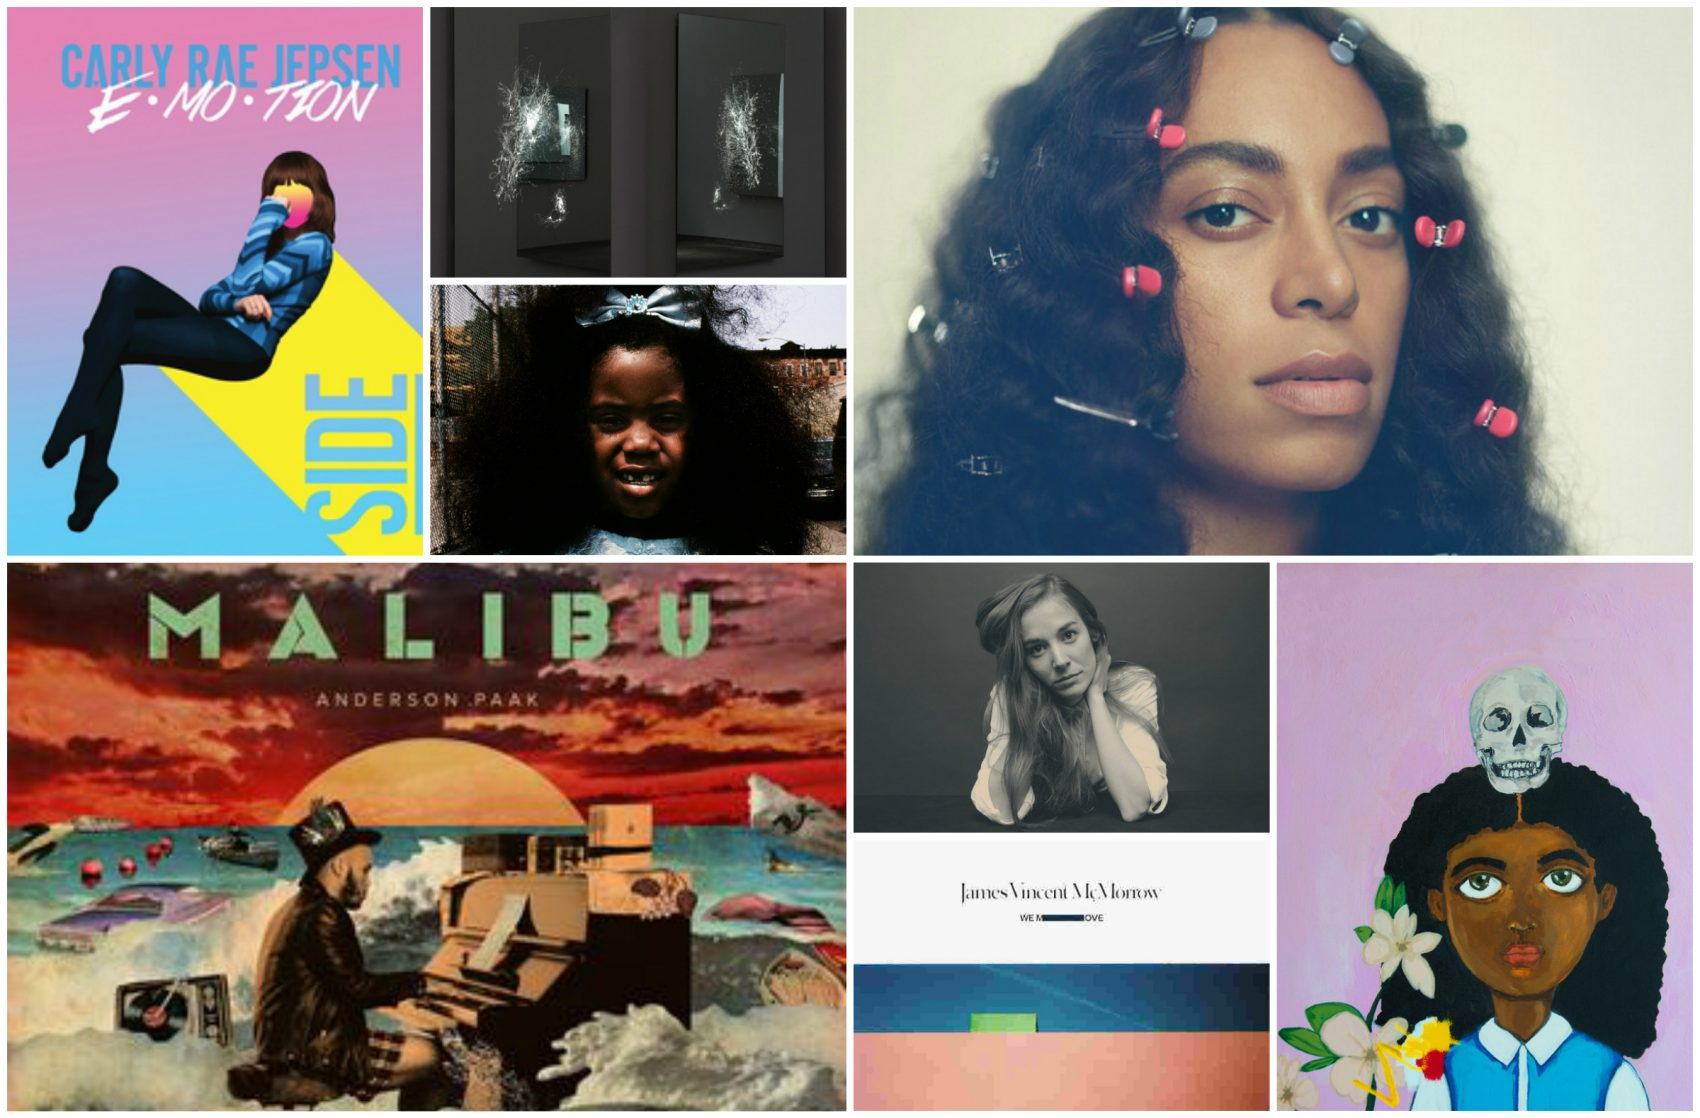 Music critic Amelia Mason runs through the year in music with her favorite albums. (Album art courtesy of the artists)